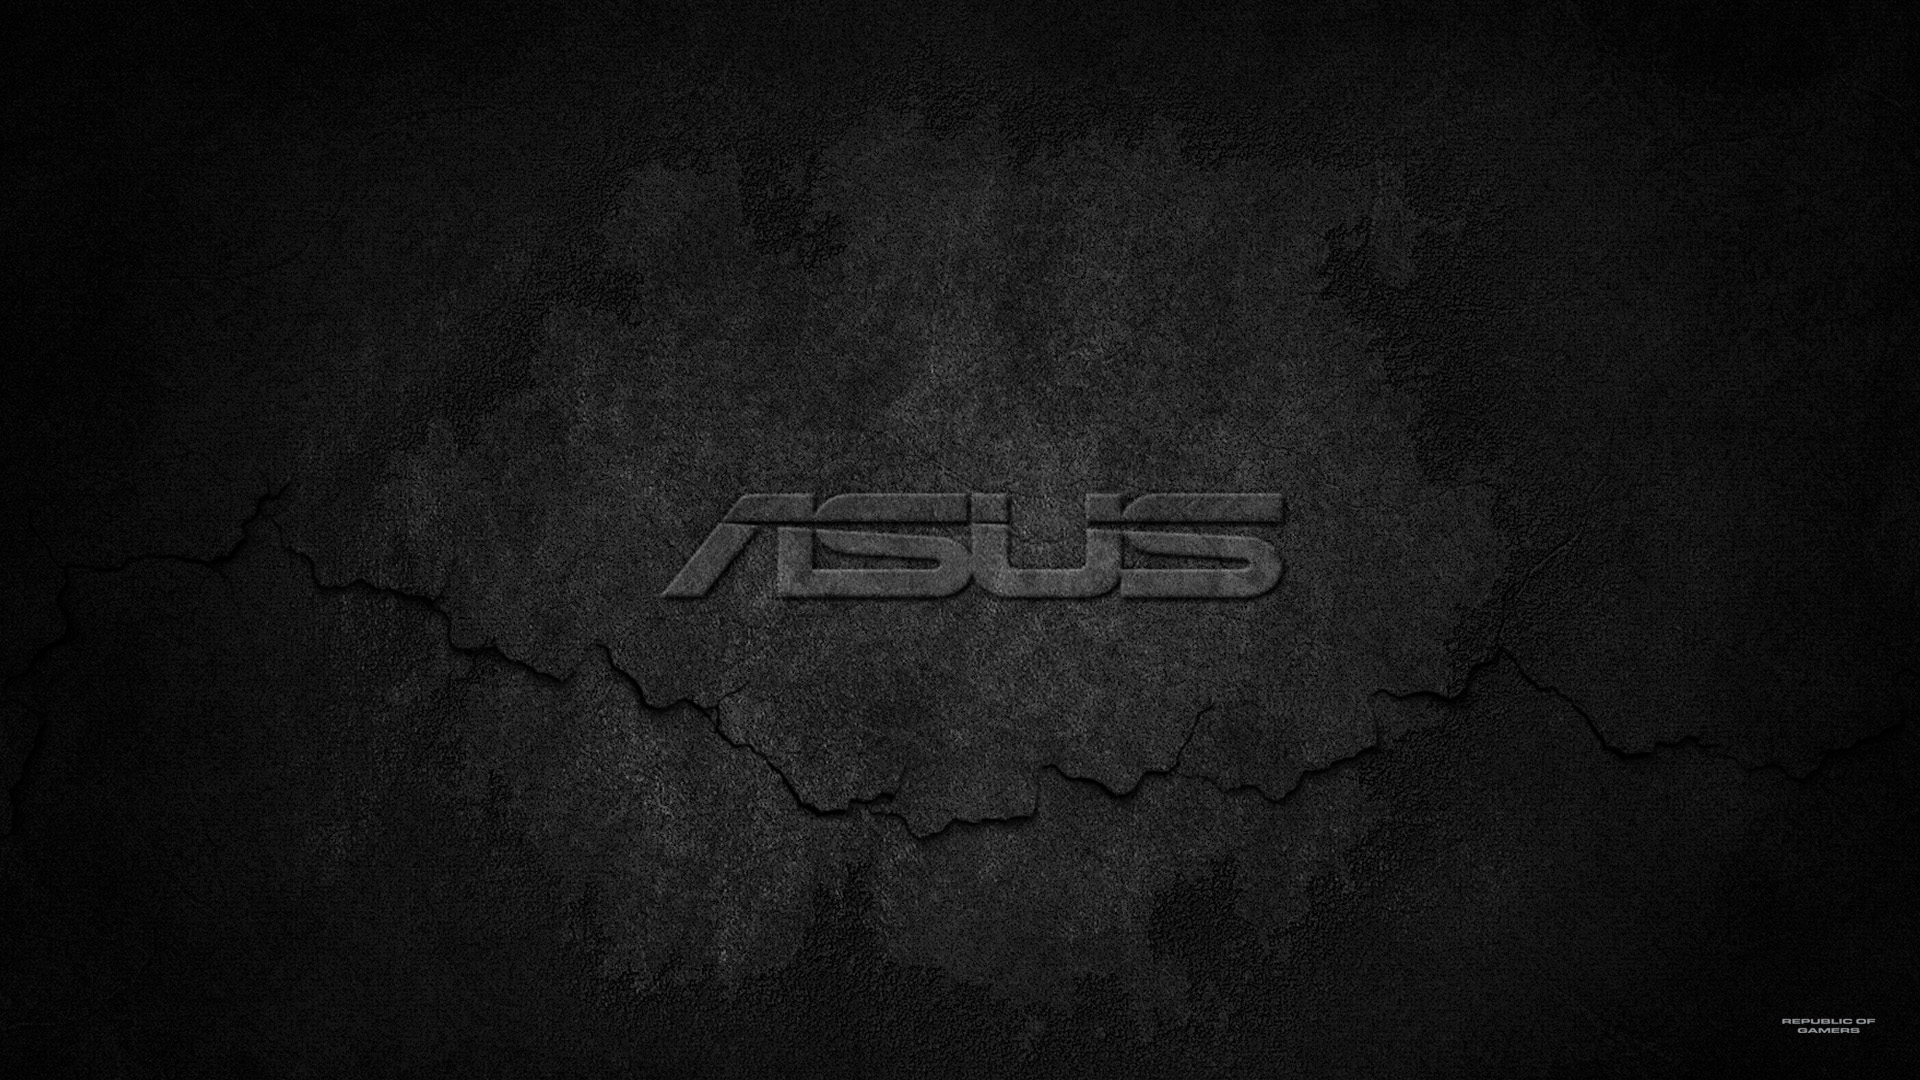 asus wallpapers hd | pixelstalk